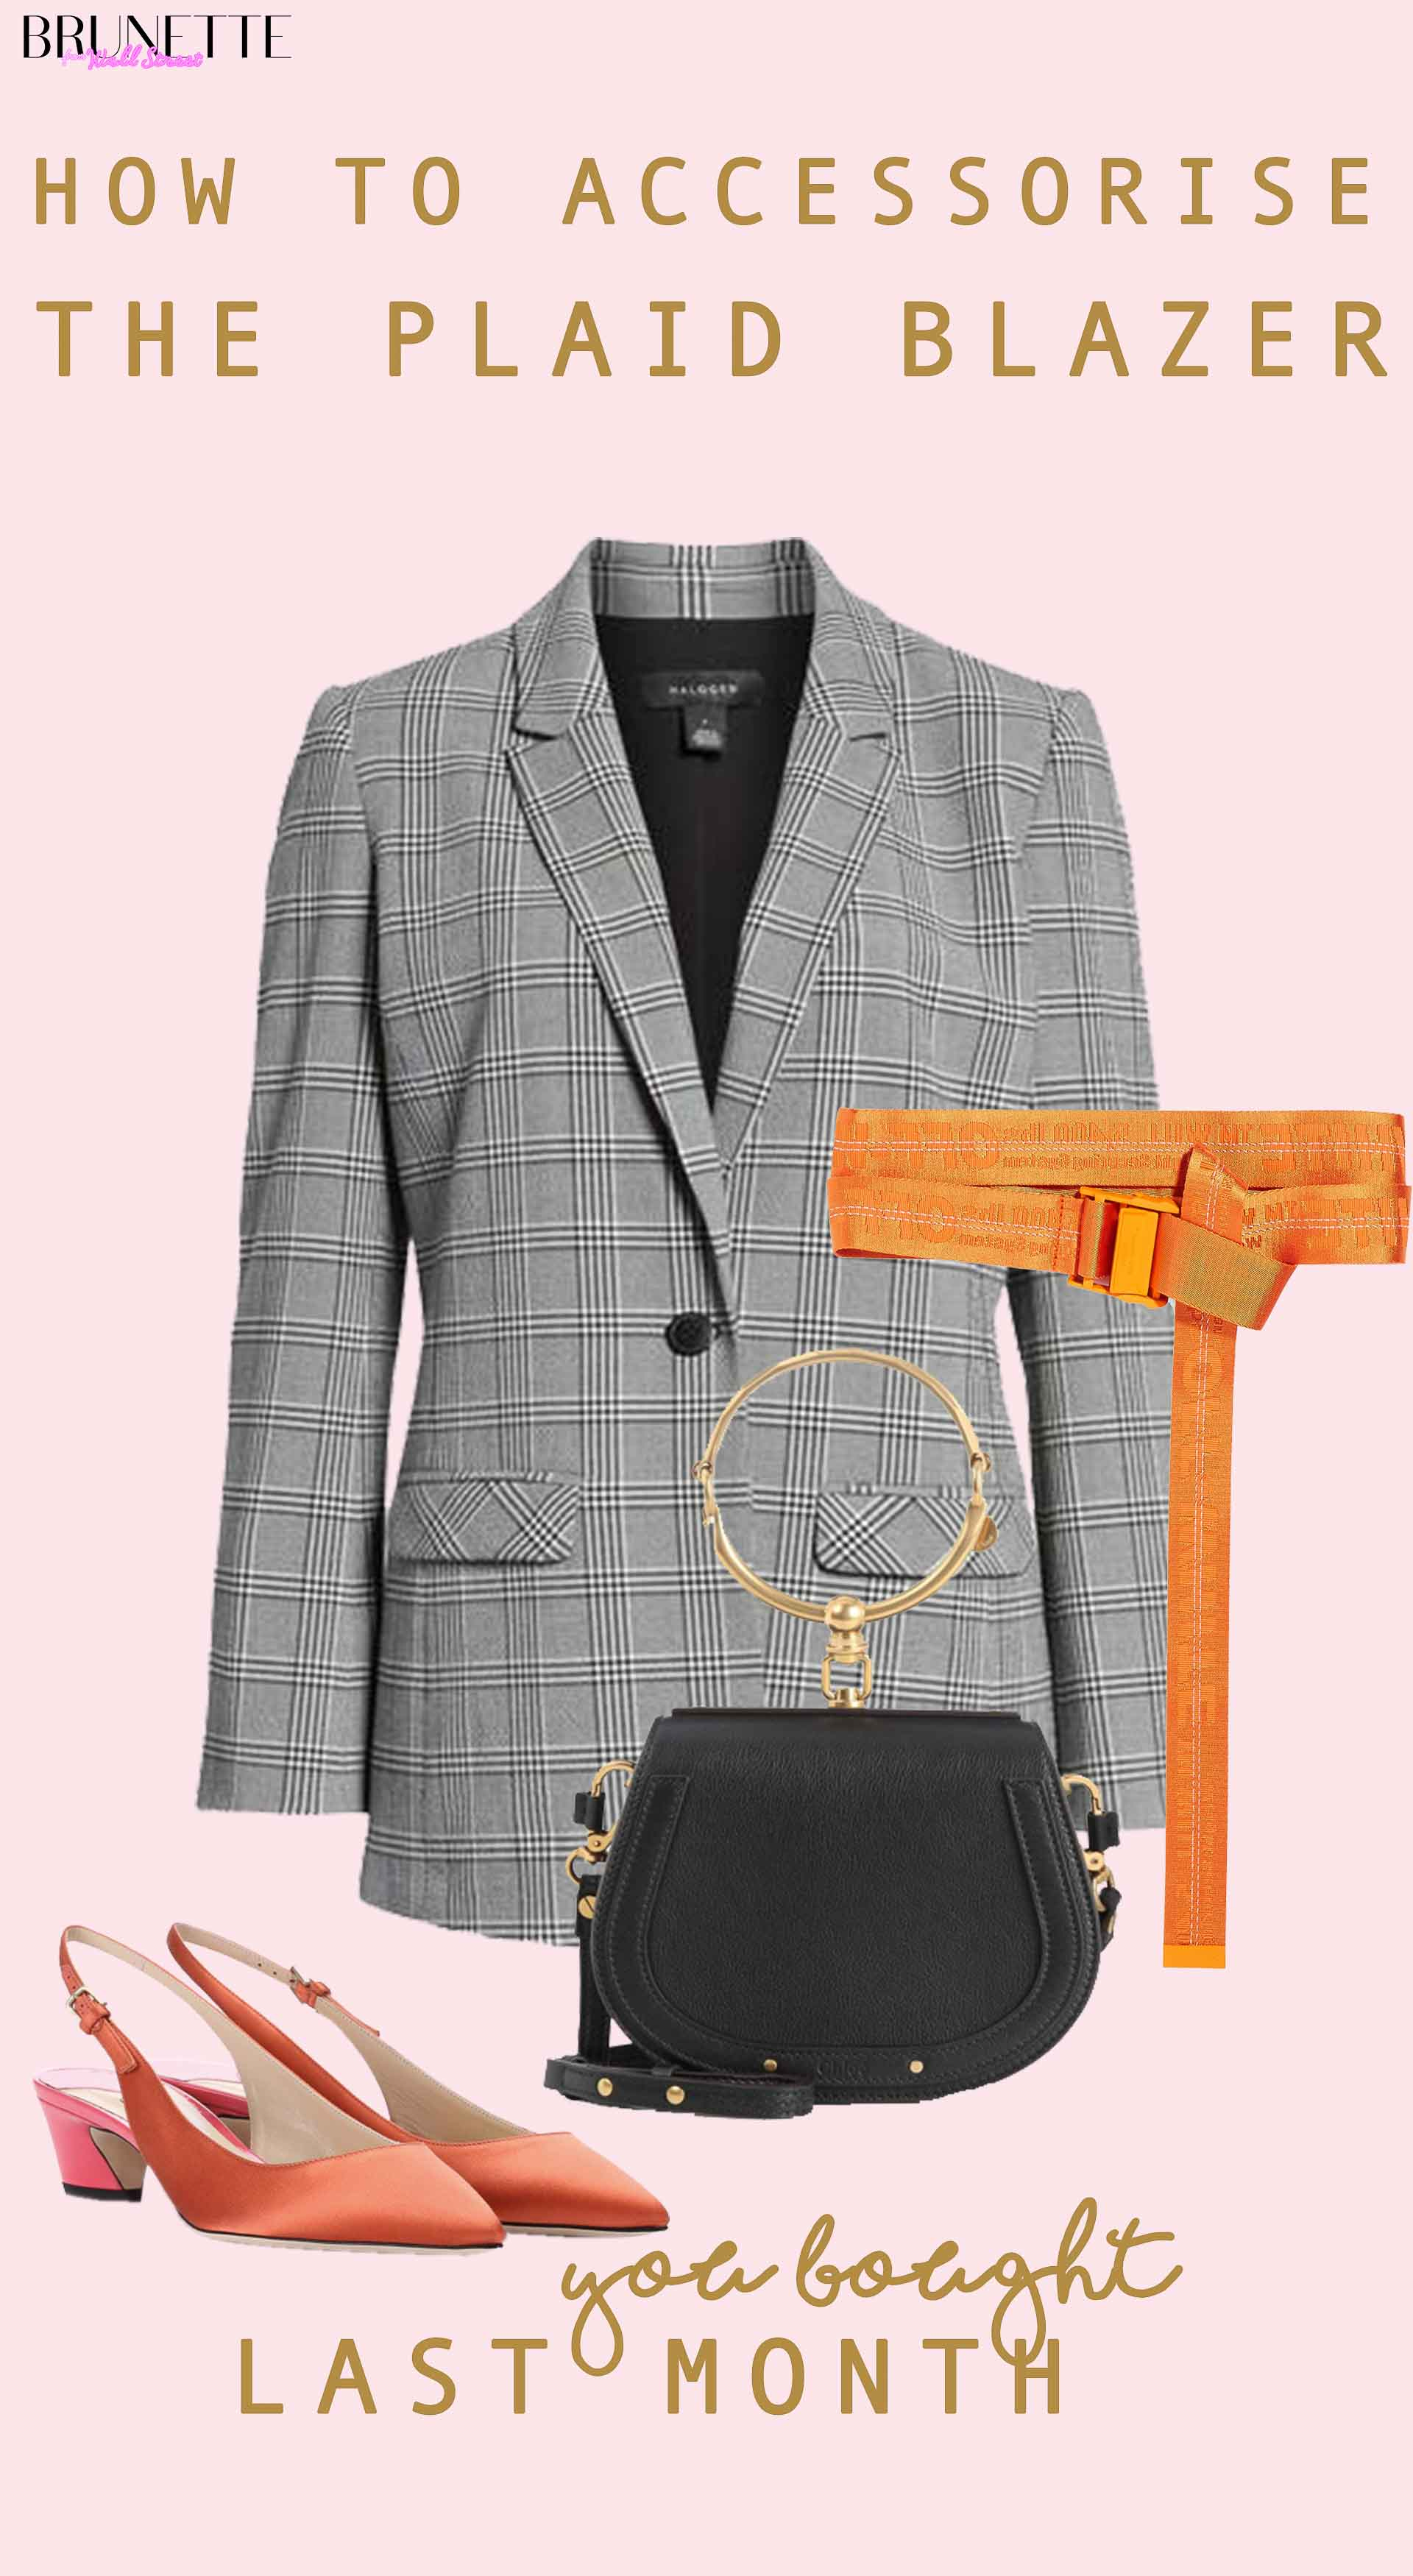 bronze slingback, off-white orange dangling belt, black Chloe nile bag, grey plaid blazer with text overlay How to stye accessorise Plaid blazer You bought last month